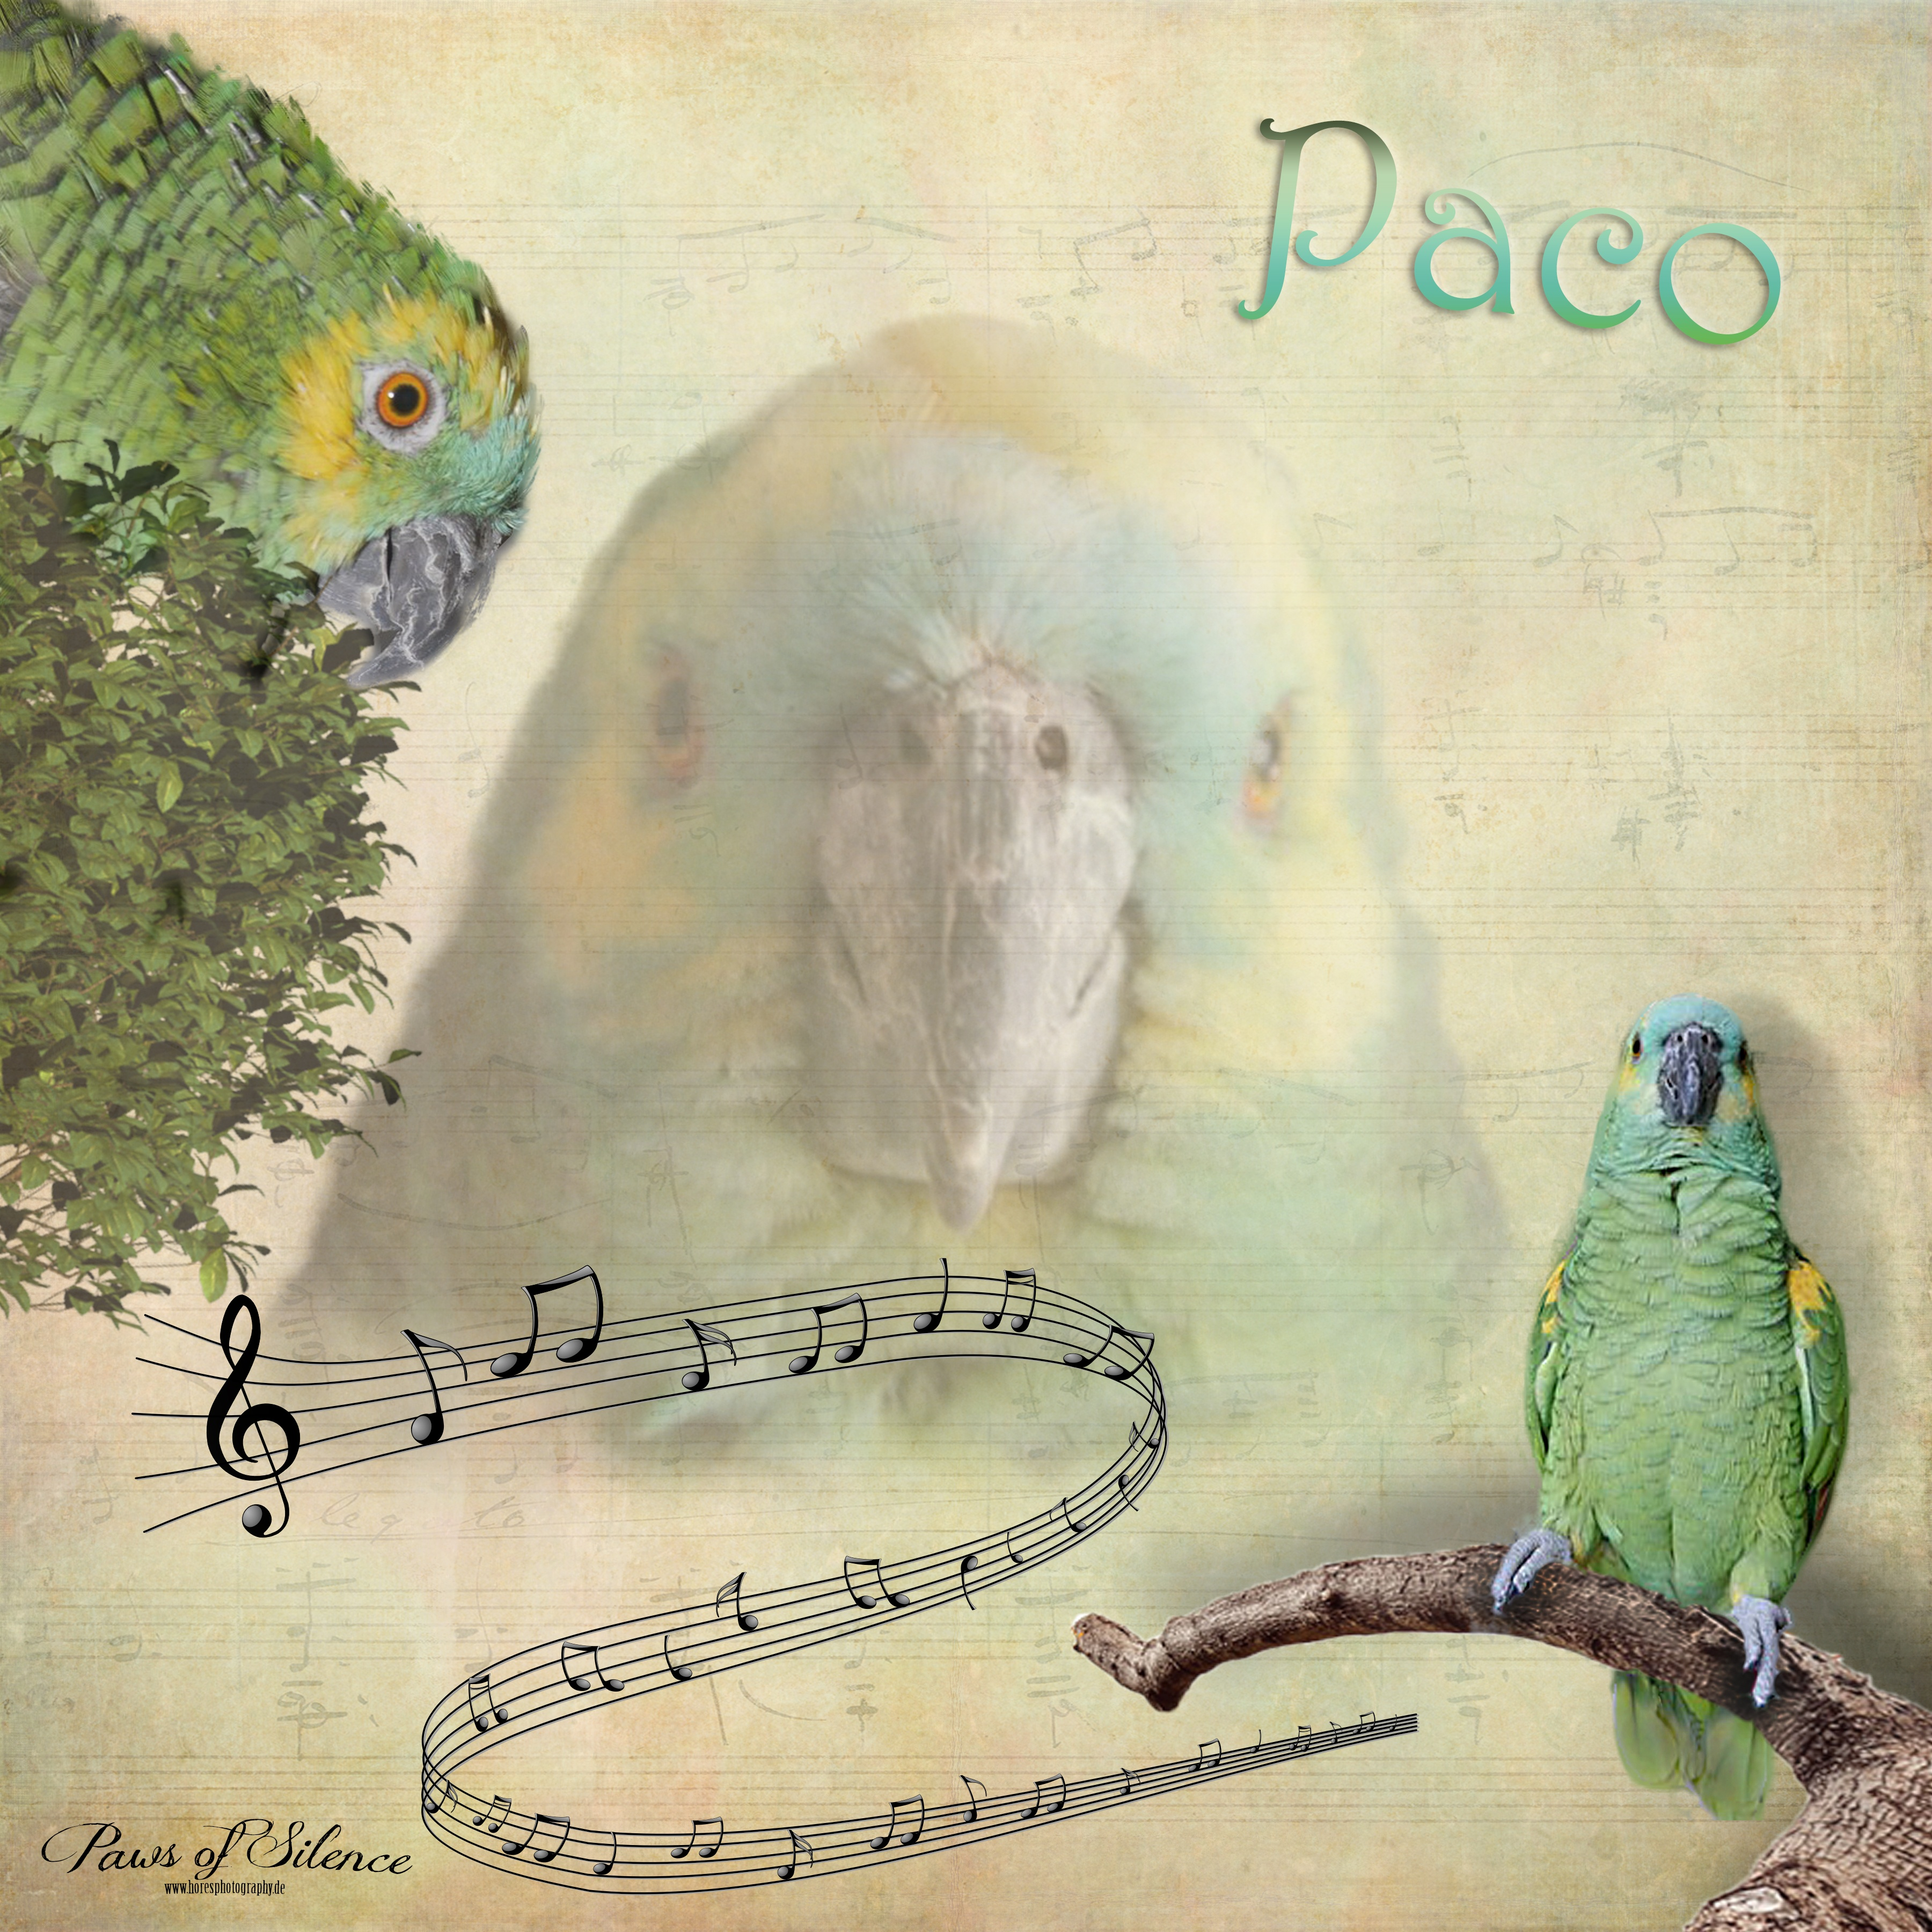 Paws of Silence77-1975paco collage.jpg794